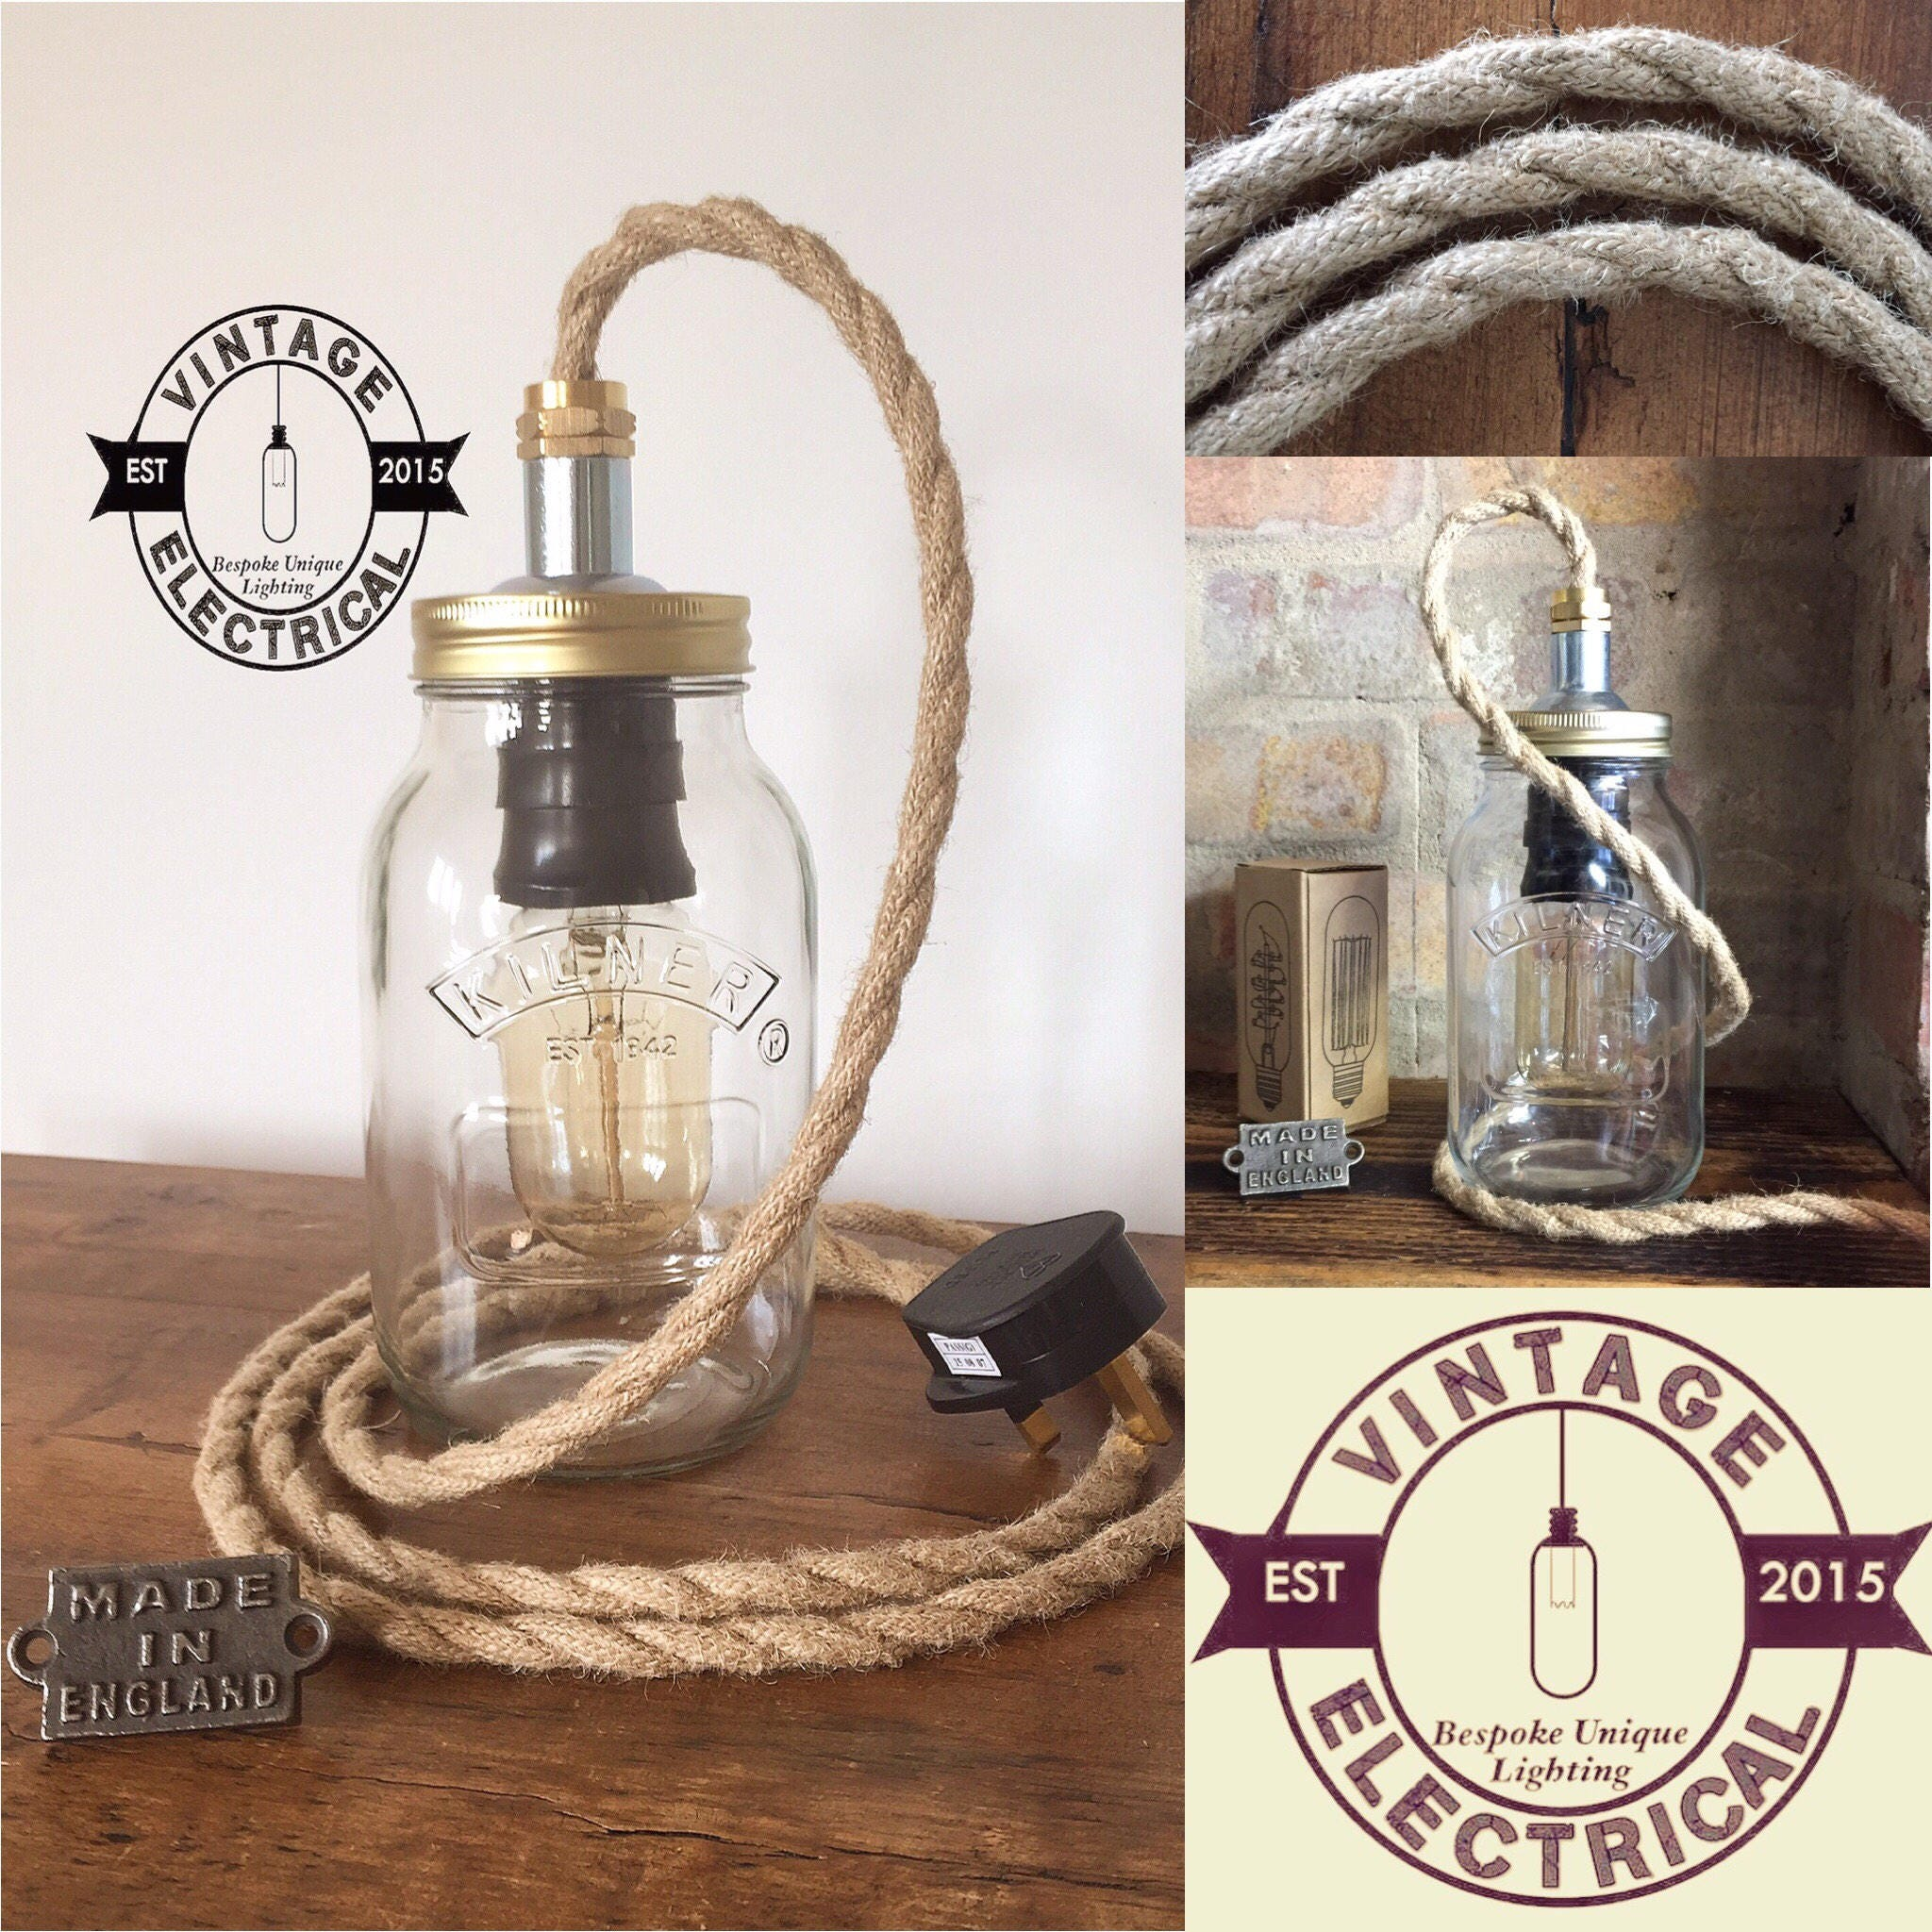 Edison Lamp Rustic Decor Unique Table Lamp Industrial: The Kirby Kilner Rope Mason Jar Table Light Industrial